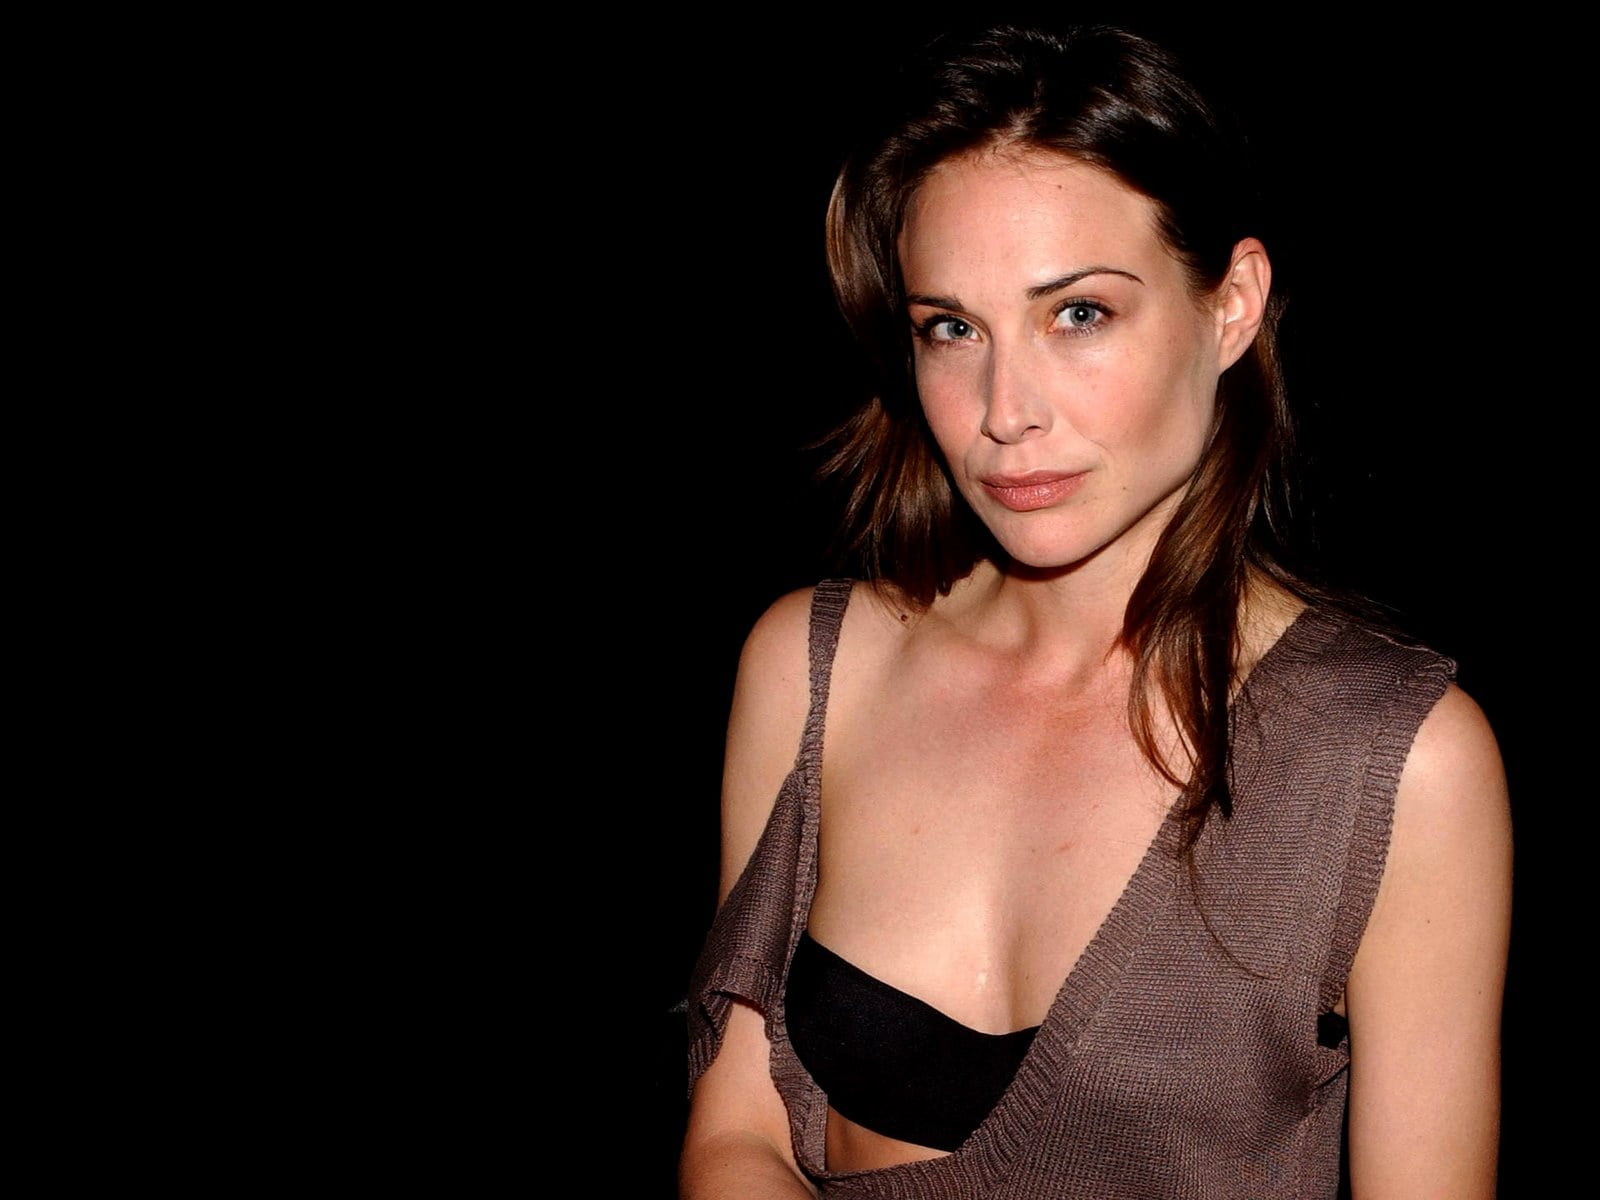 Claire-Forlani- cleavages hot